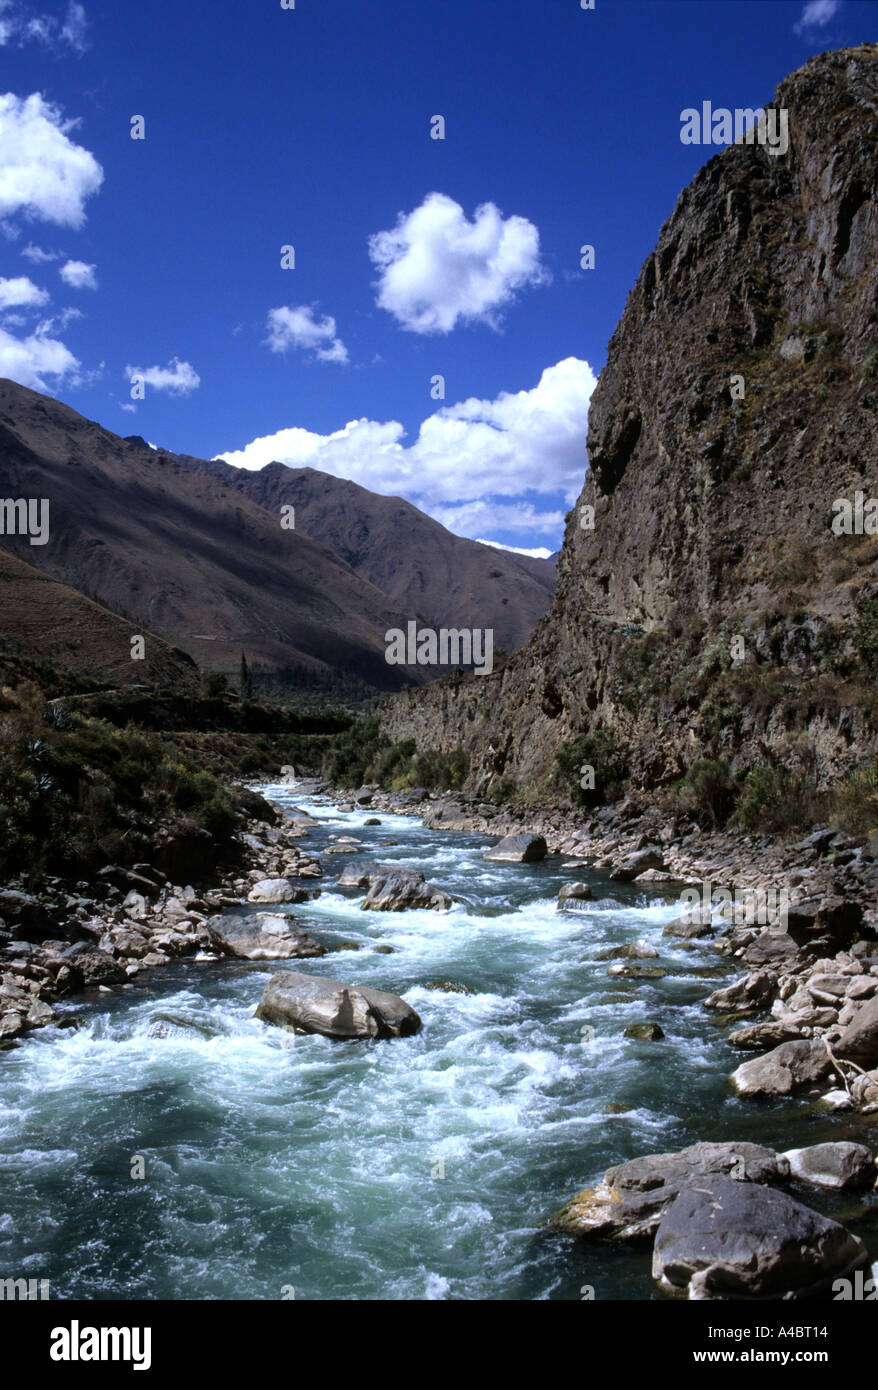 Inca Trail, Peru. View down the Lluluchayoc valley with the Lluluchapampa campsite. - Stock Image